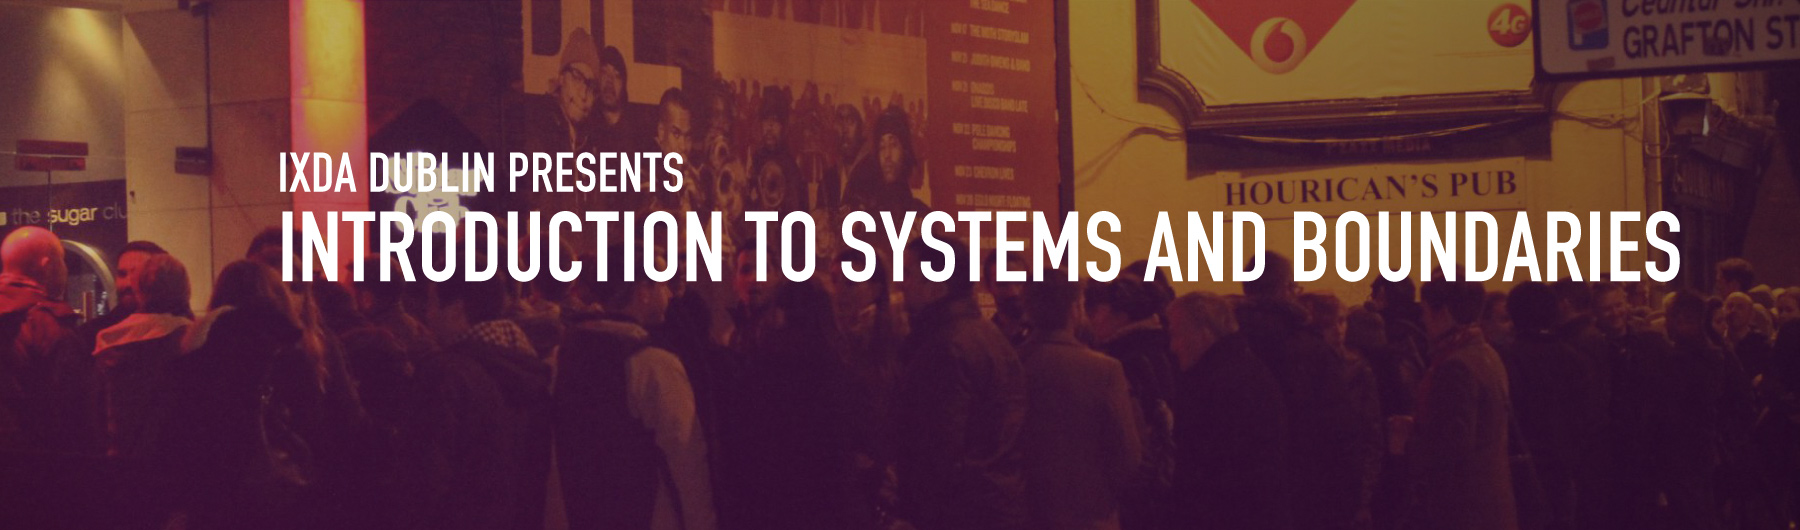 Introduction to Systems and Boundaries